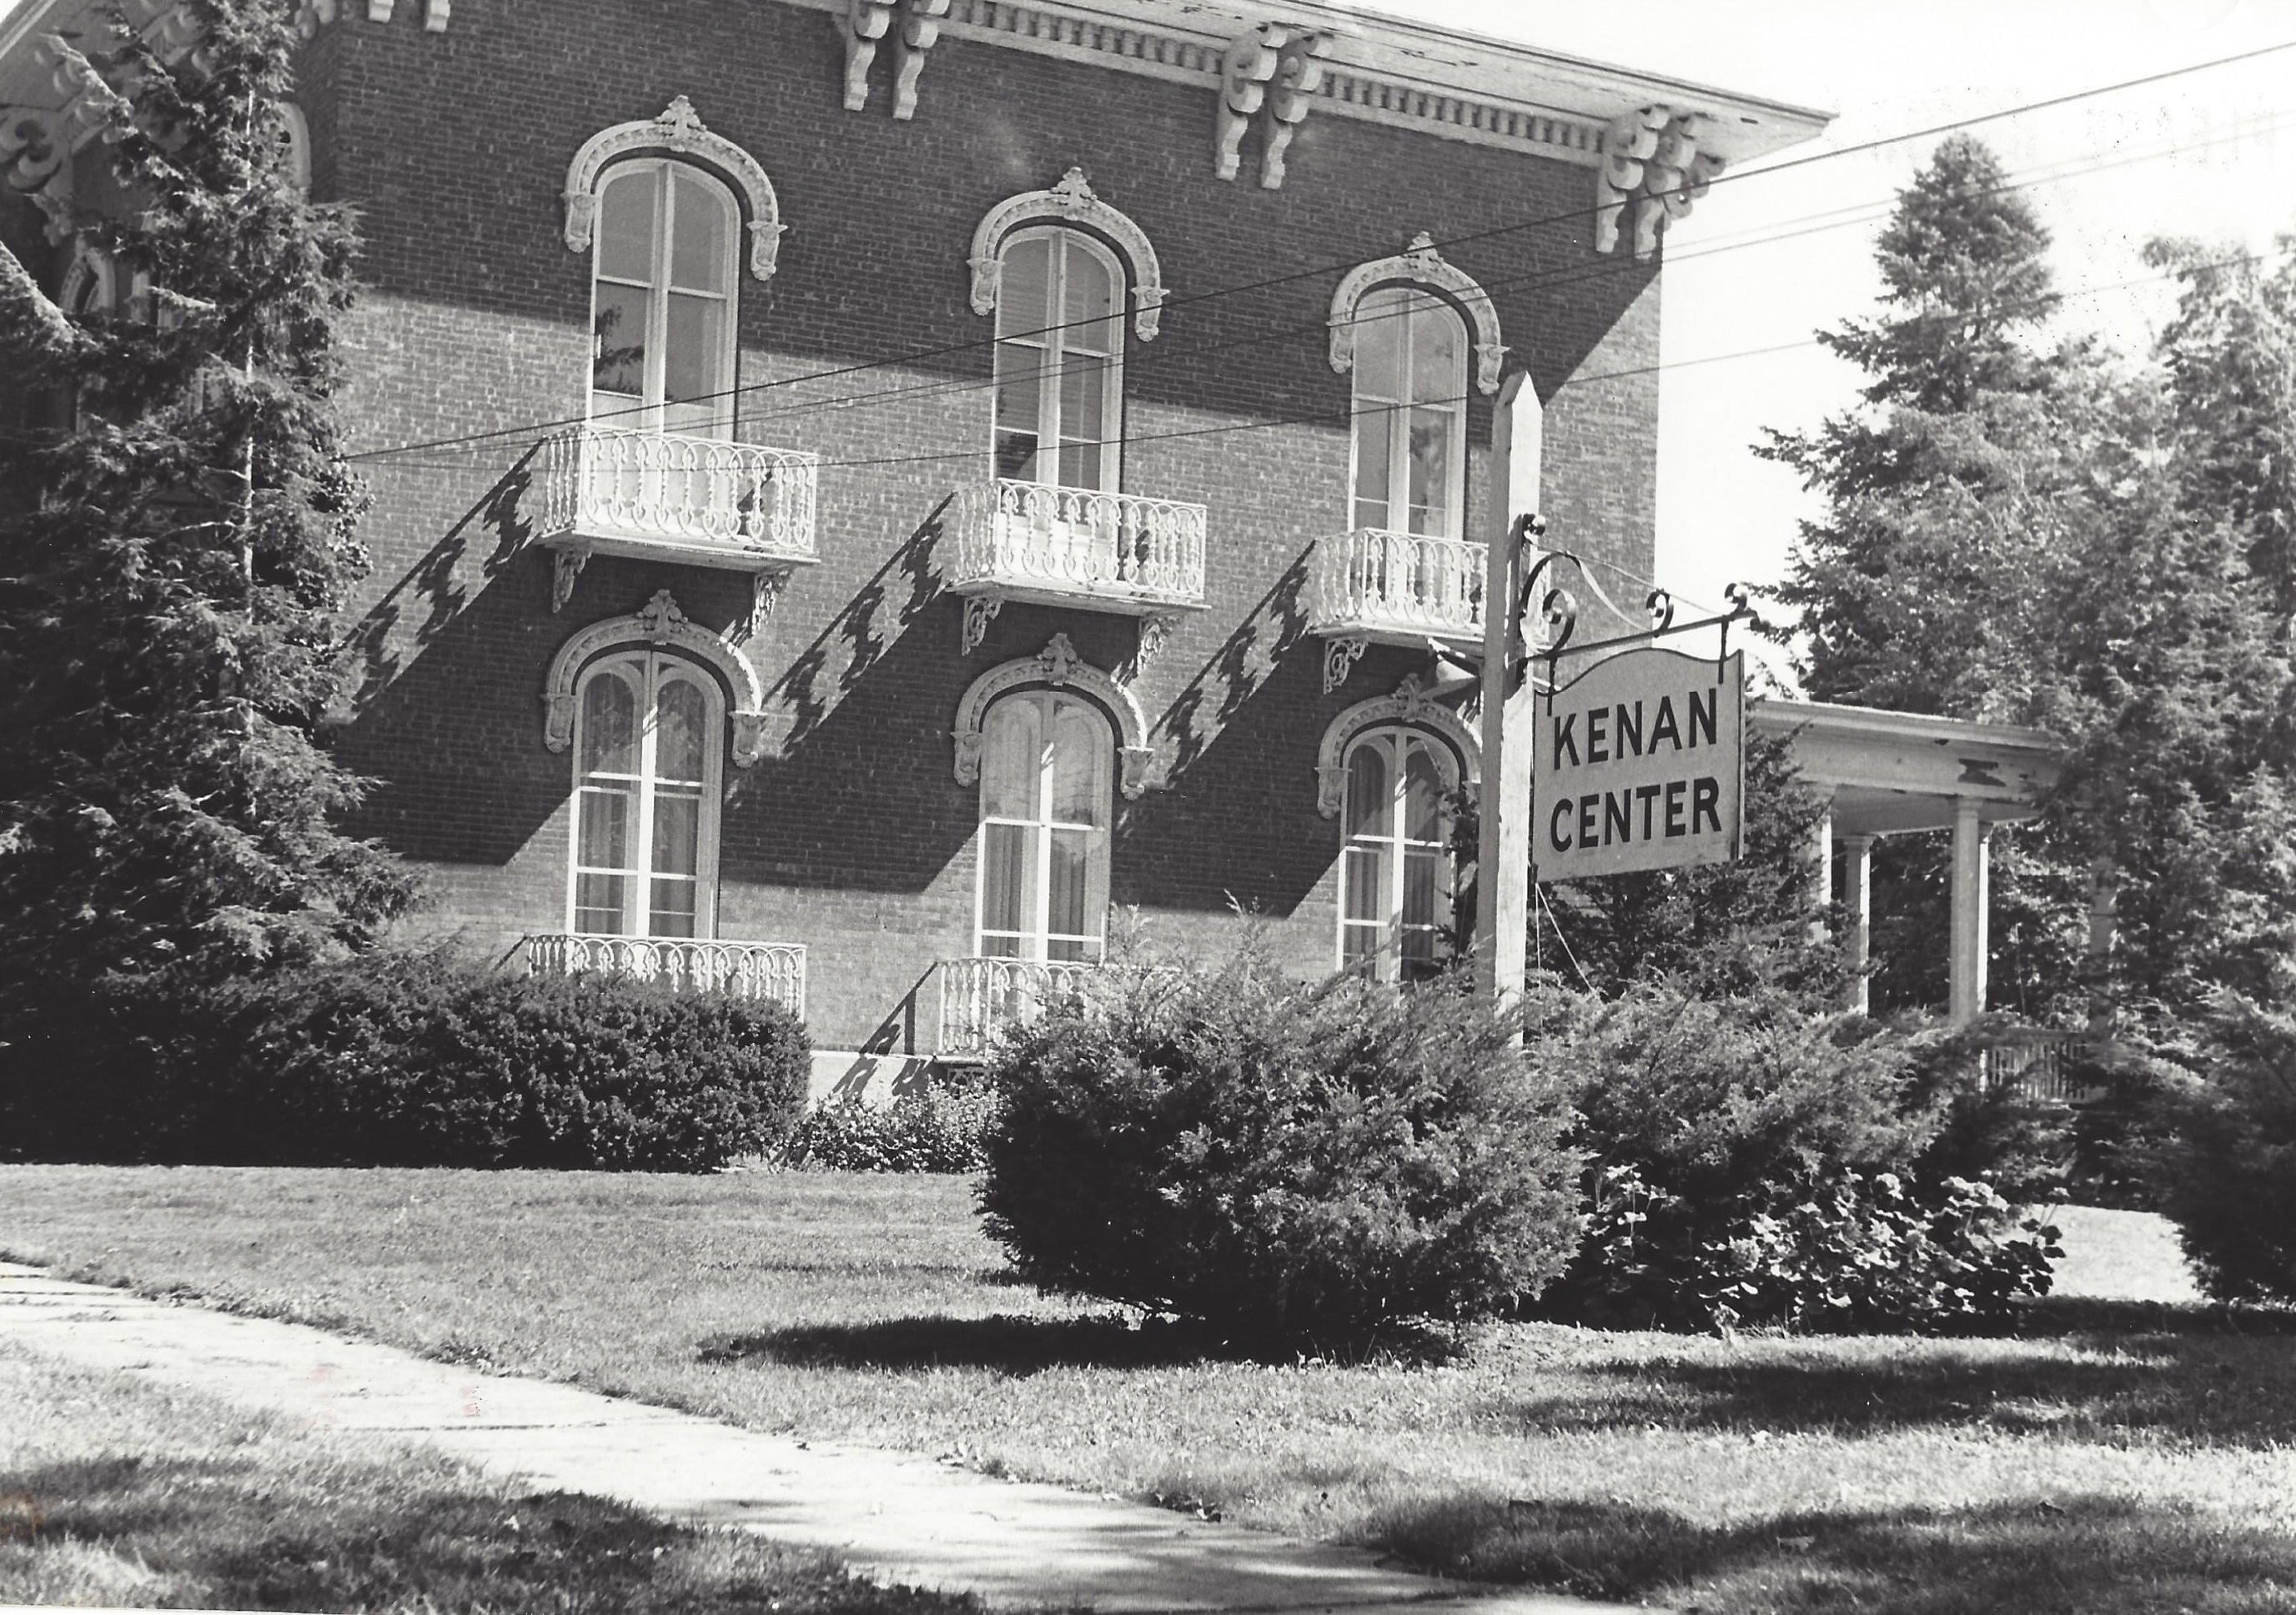 The Kenan Center, shown in an undated photo, has long been a cultural fixture in Lockport.